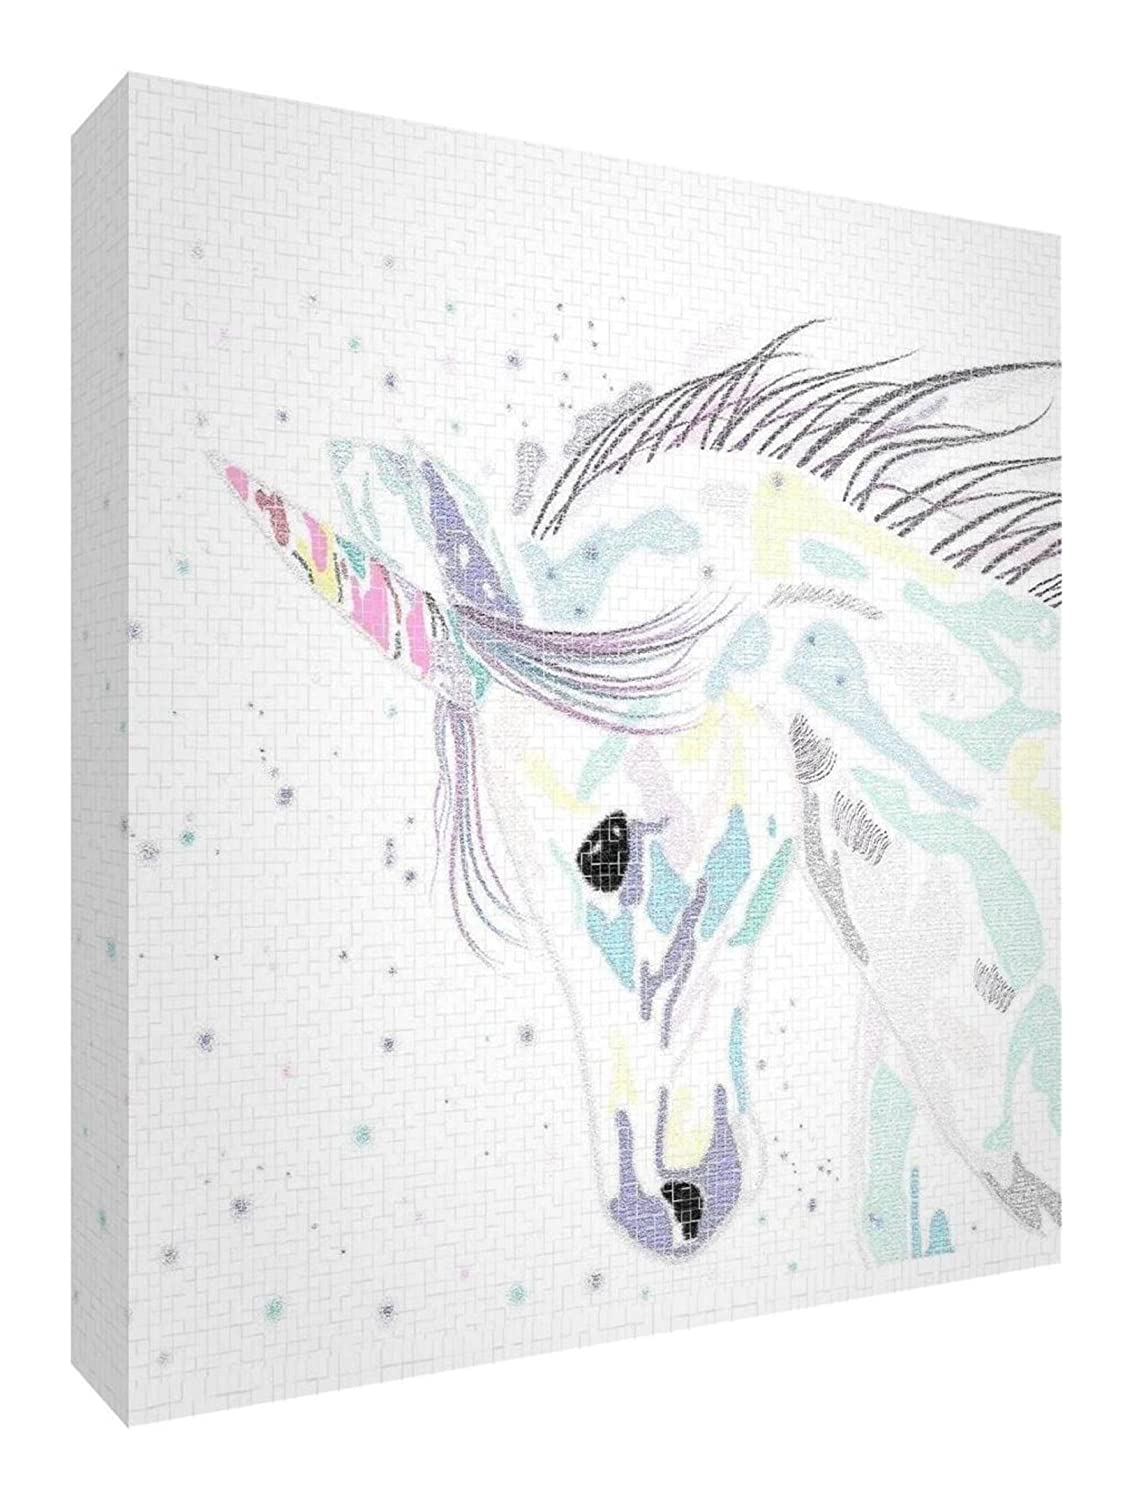 Feel Good Art Unicorn Design Stylish/Modern/Solid Fronted Wall Canvas, Medium, 38 x 38 x 3 cm, Multi-coloured Palette Little Helper Ltd BC-STYLISEDUNICORN-1515-15